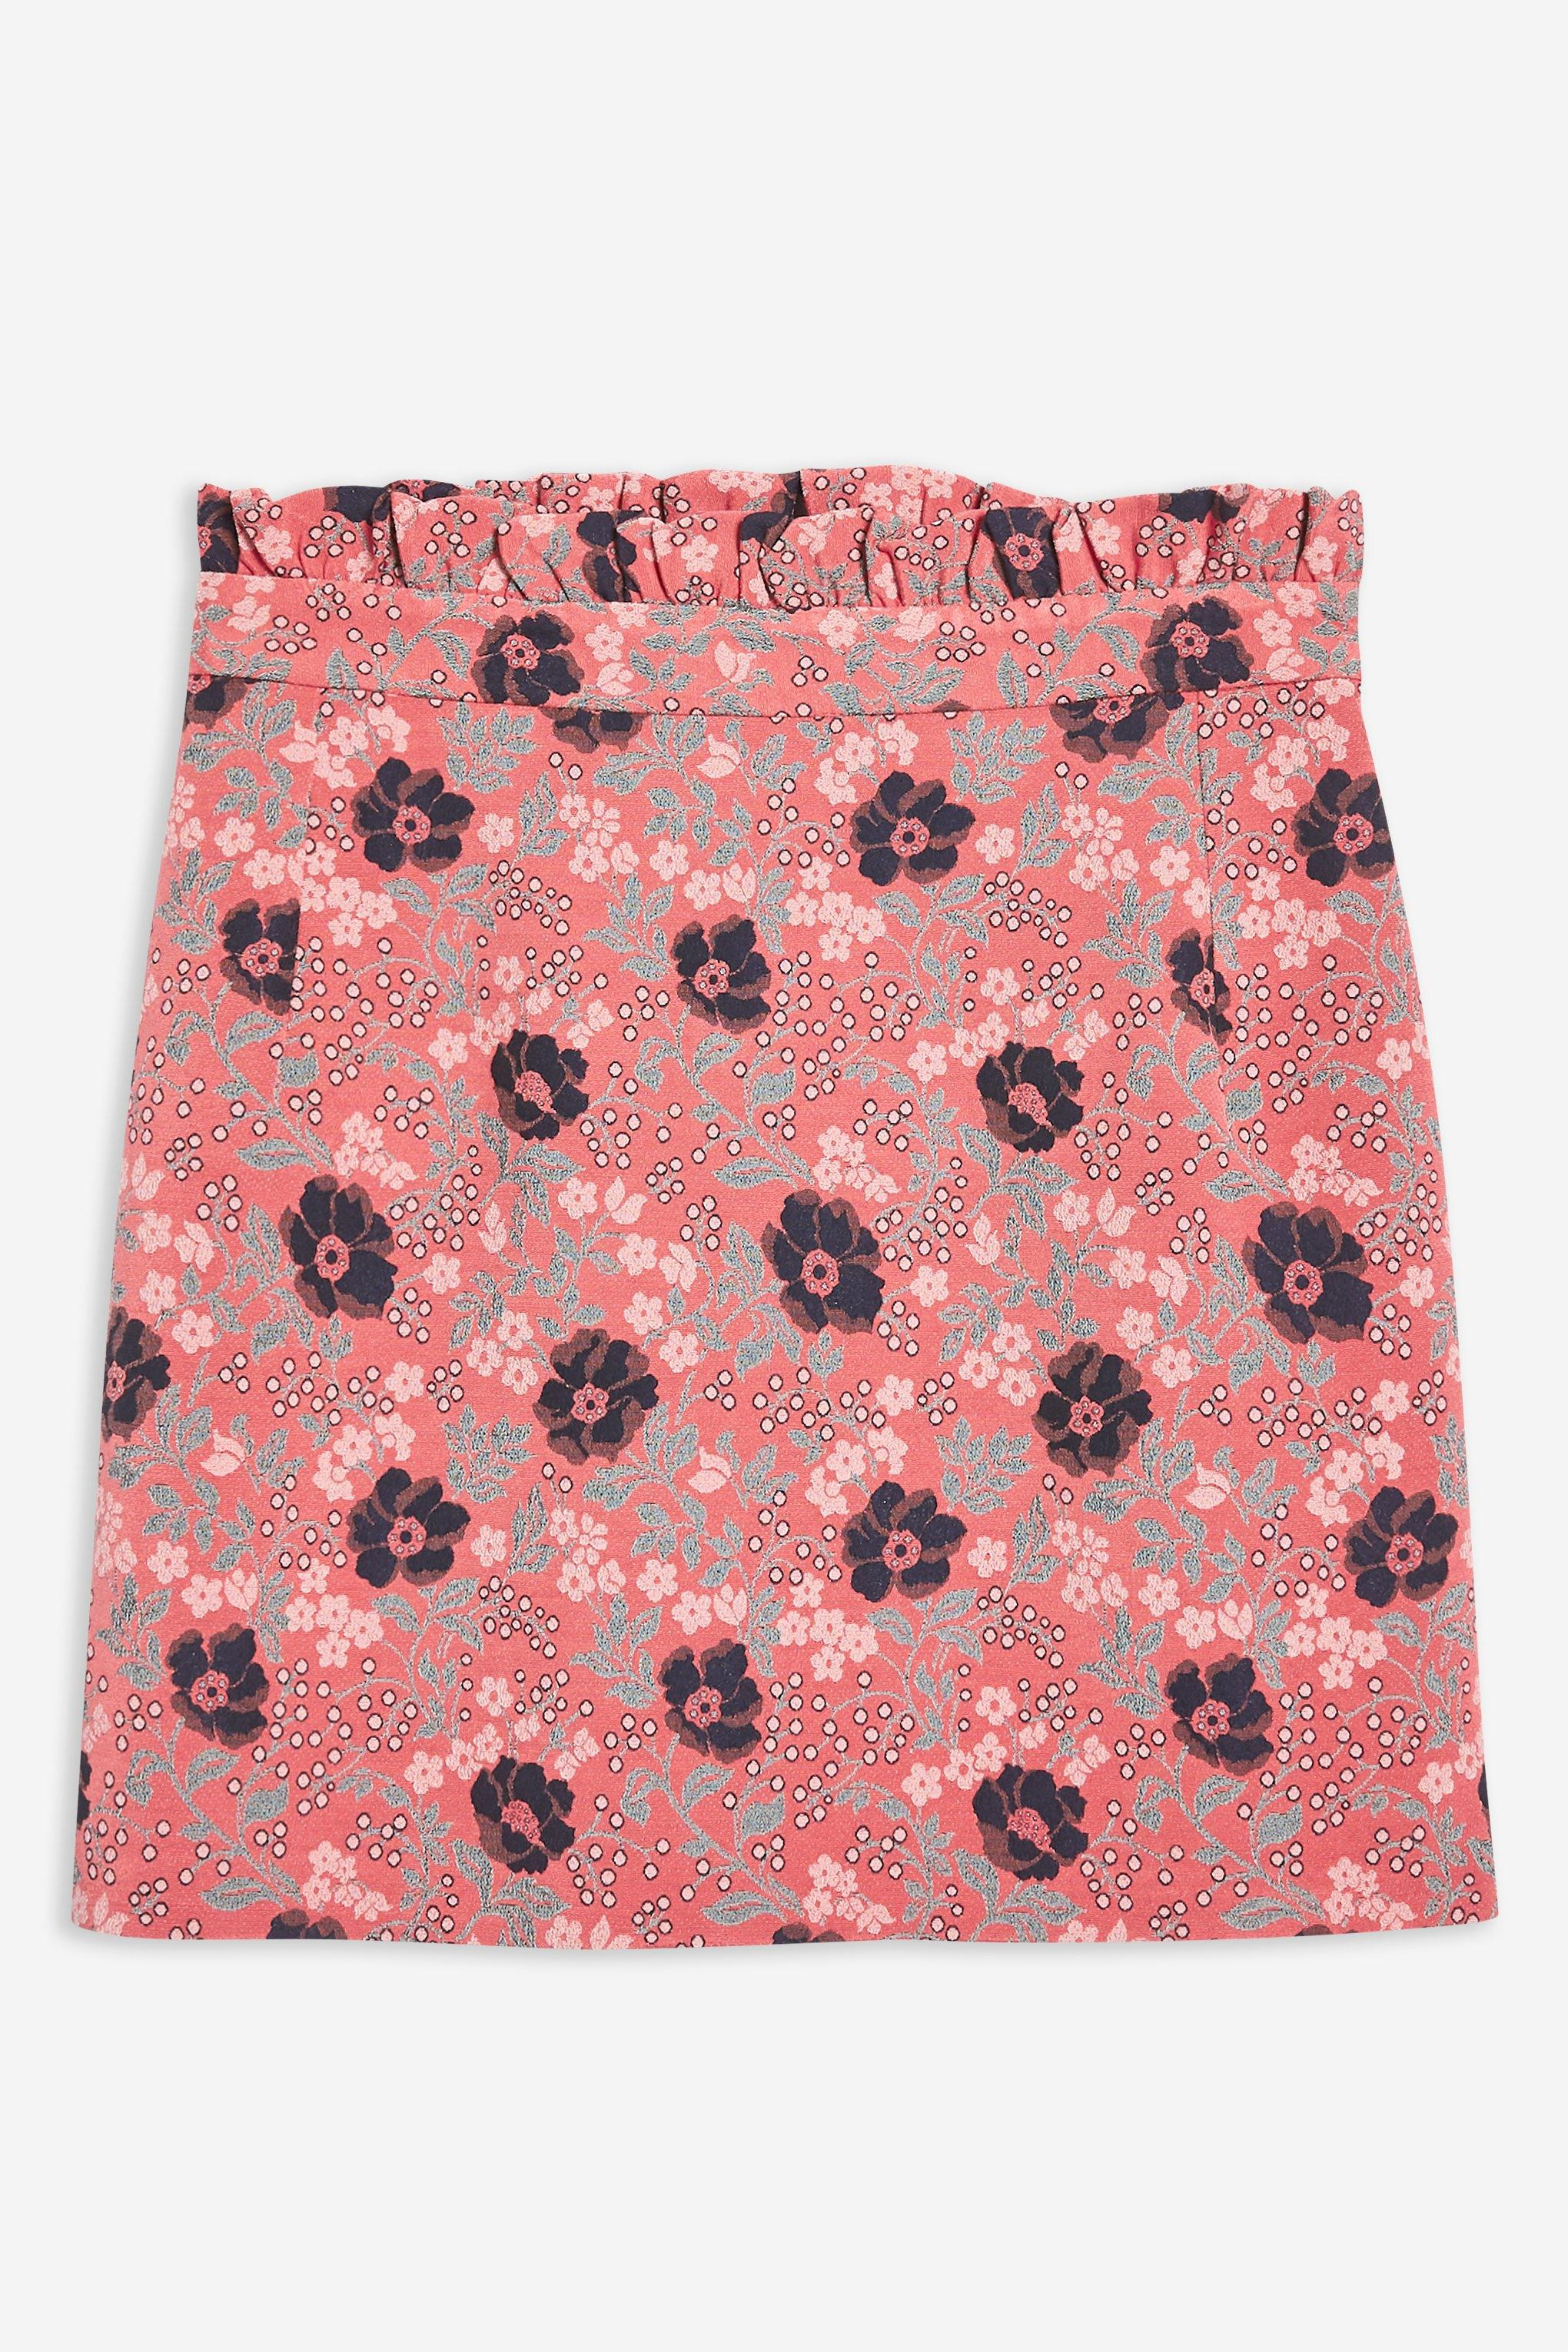 67df7a3bc9ce00 Lyst - TOPSHOP Petite Poppy Jacquard Skirt in Pink - Save 67%